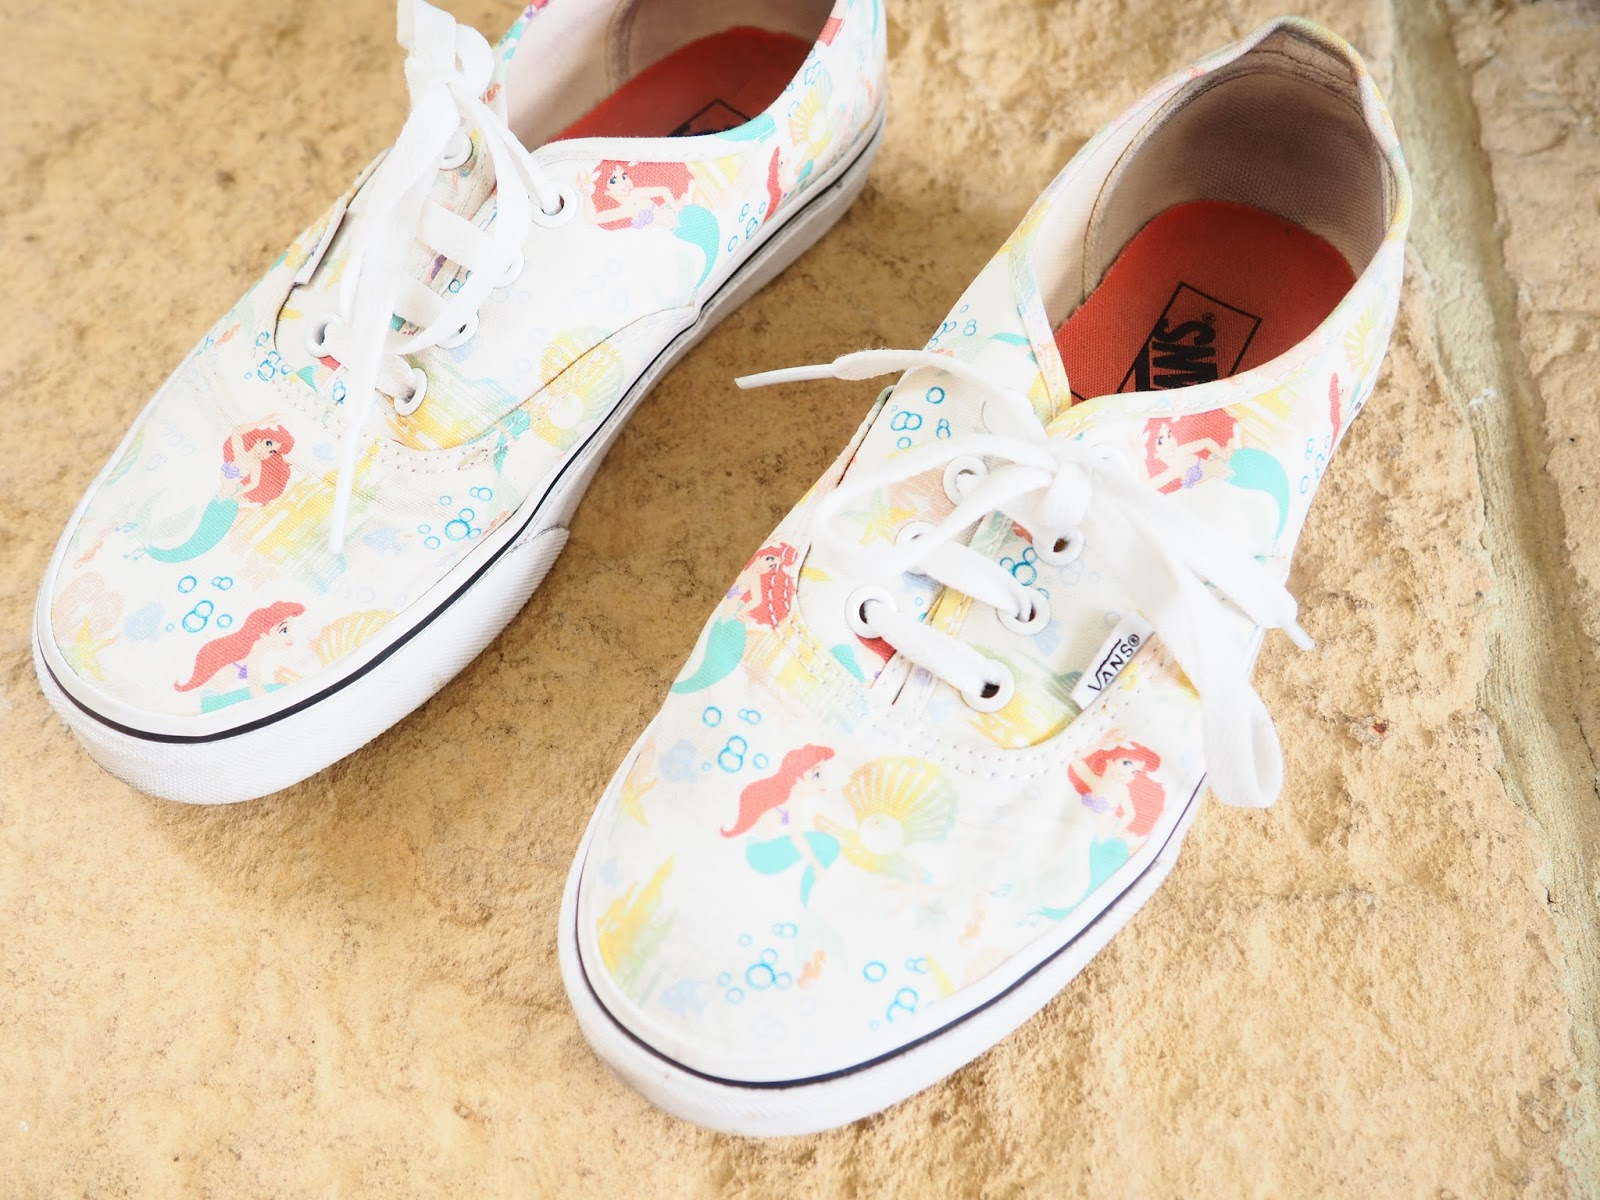 Disney Ariel The Little Mermaid Vans Shoes